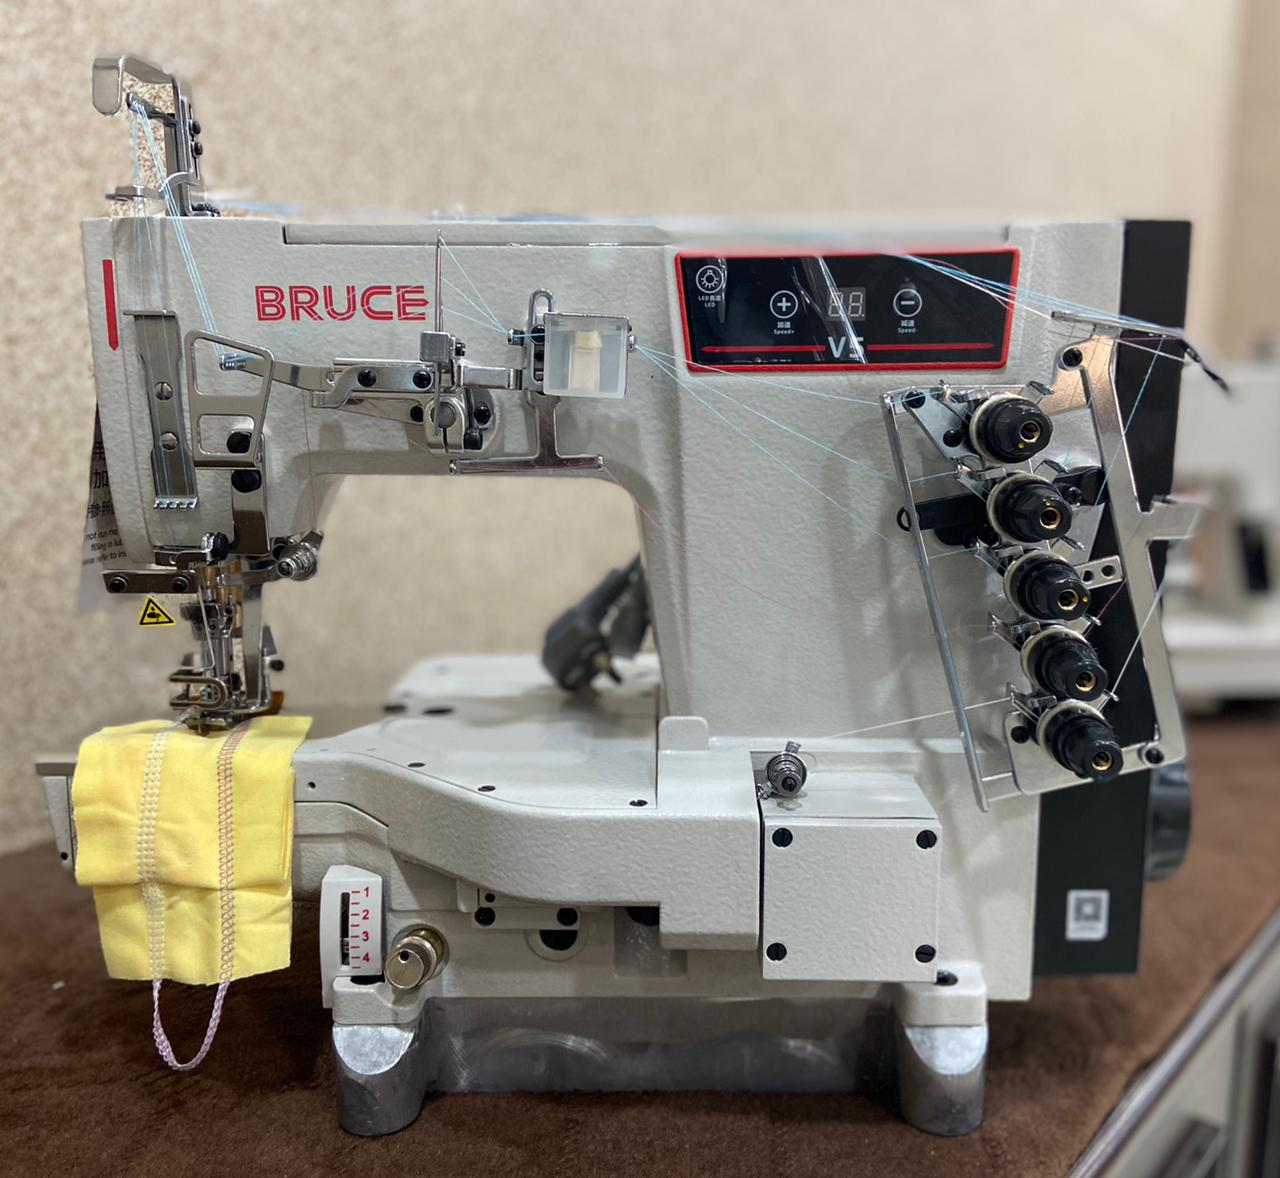 Bruce V5 Cylinder Bed Interlock With Left Edge Cutter Direct Drive